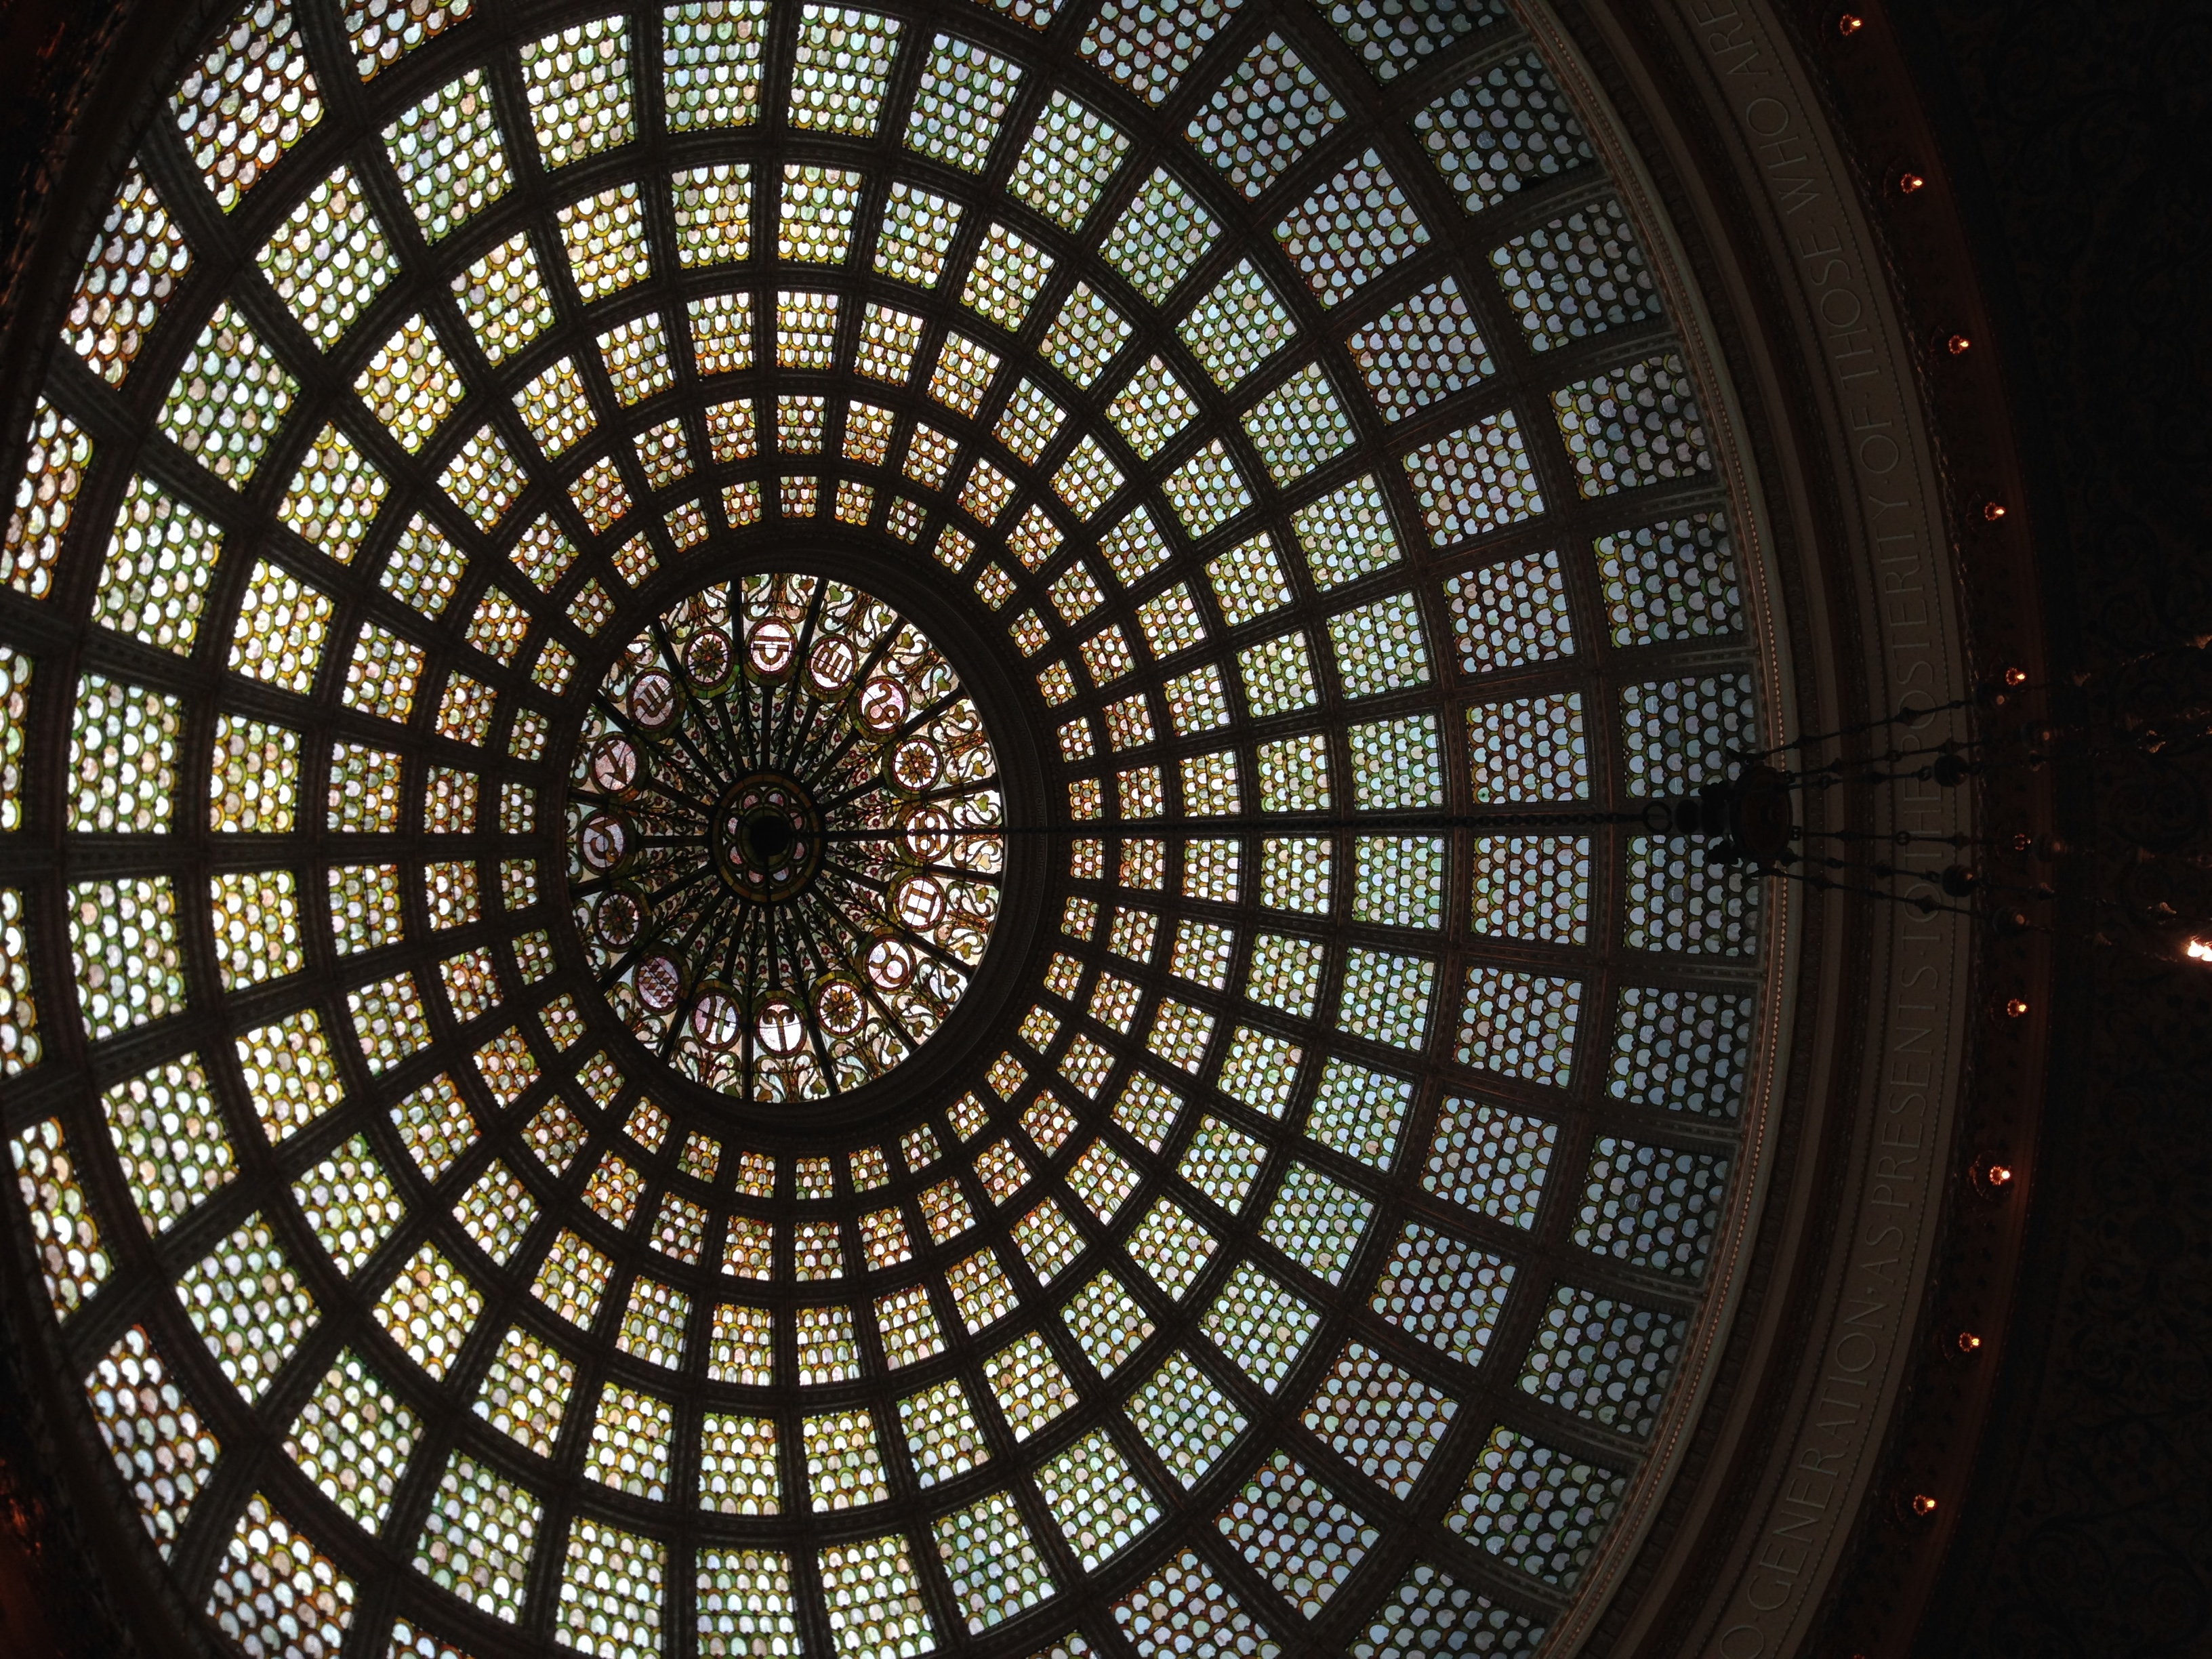 Beautiful Tiffany glass dome inside the Chicago Cultural Center